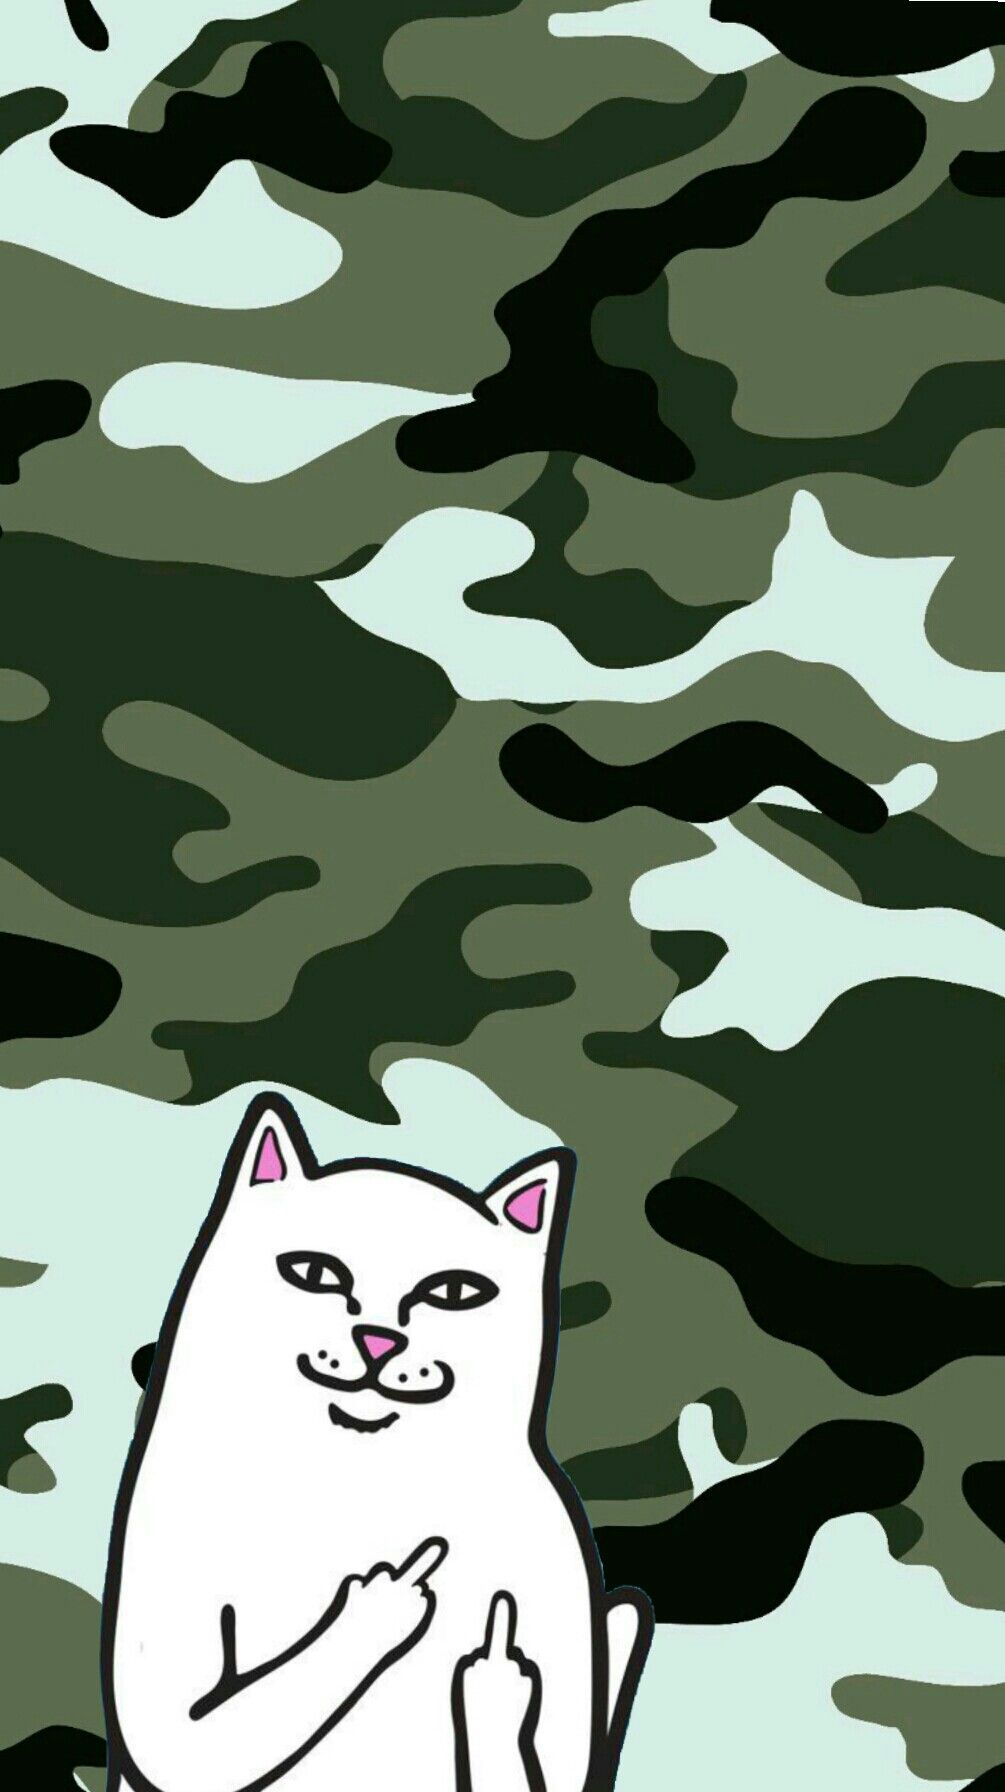 Wallpaper Middle Finger Cat Ripndip Wallpaper Iphone